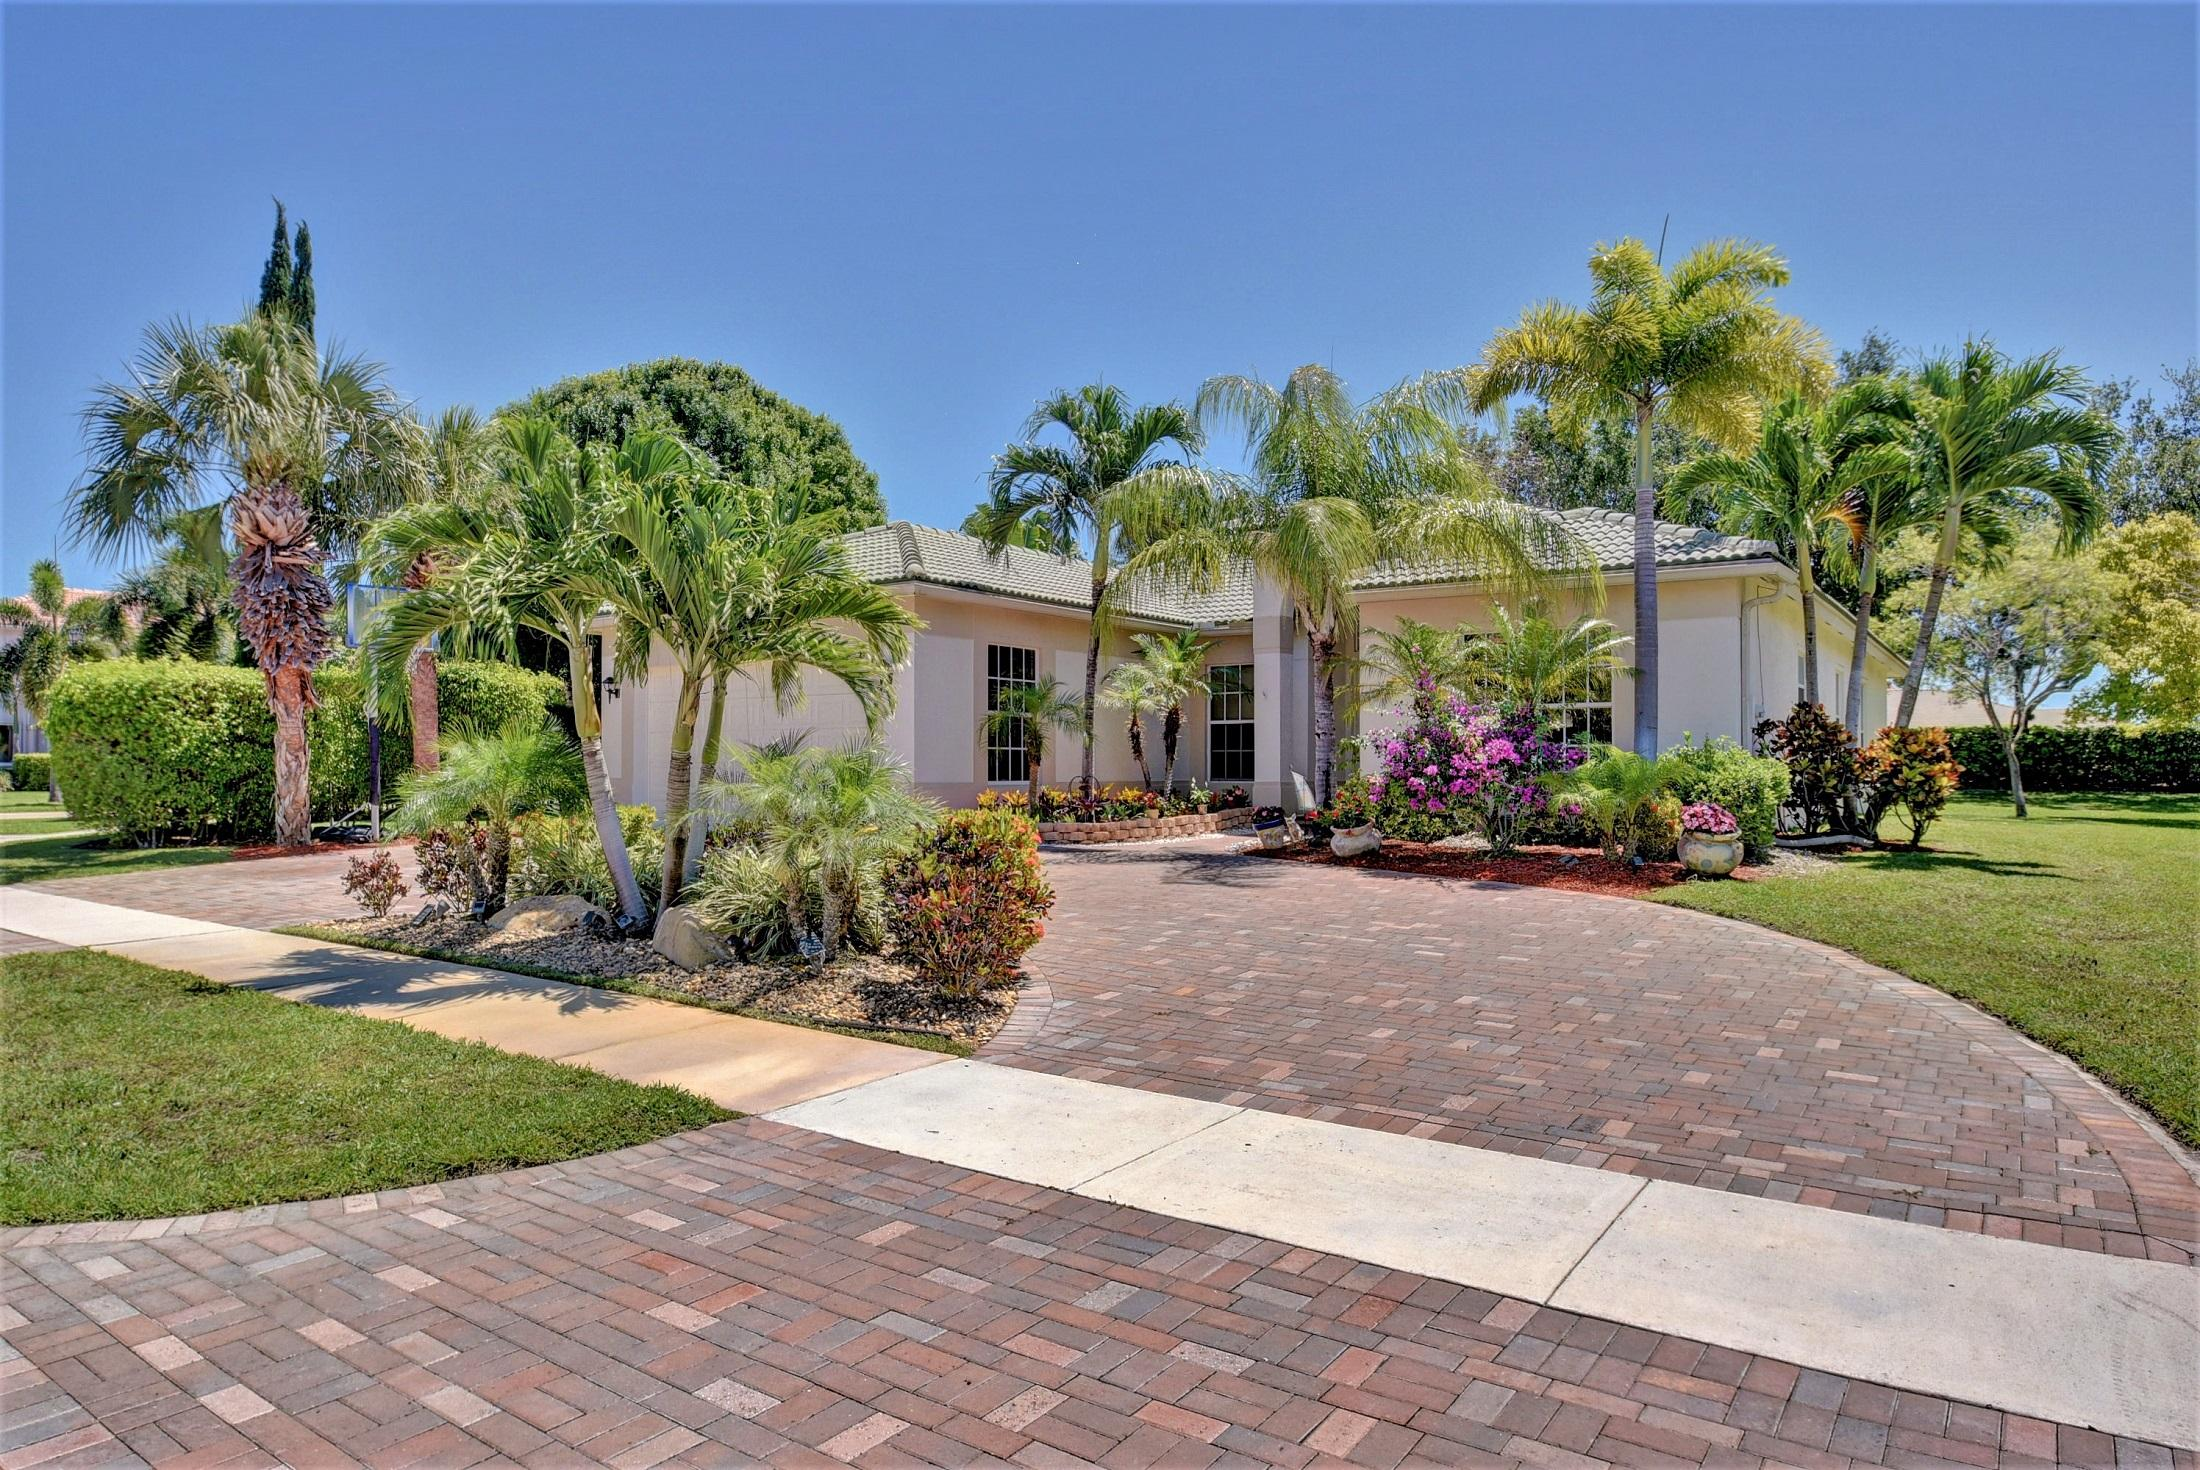 Home for sale in Windward Cove Wellington Florida